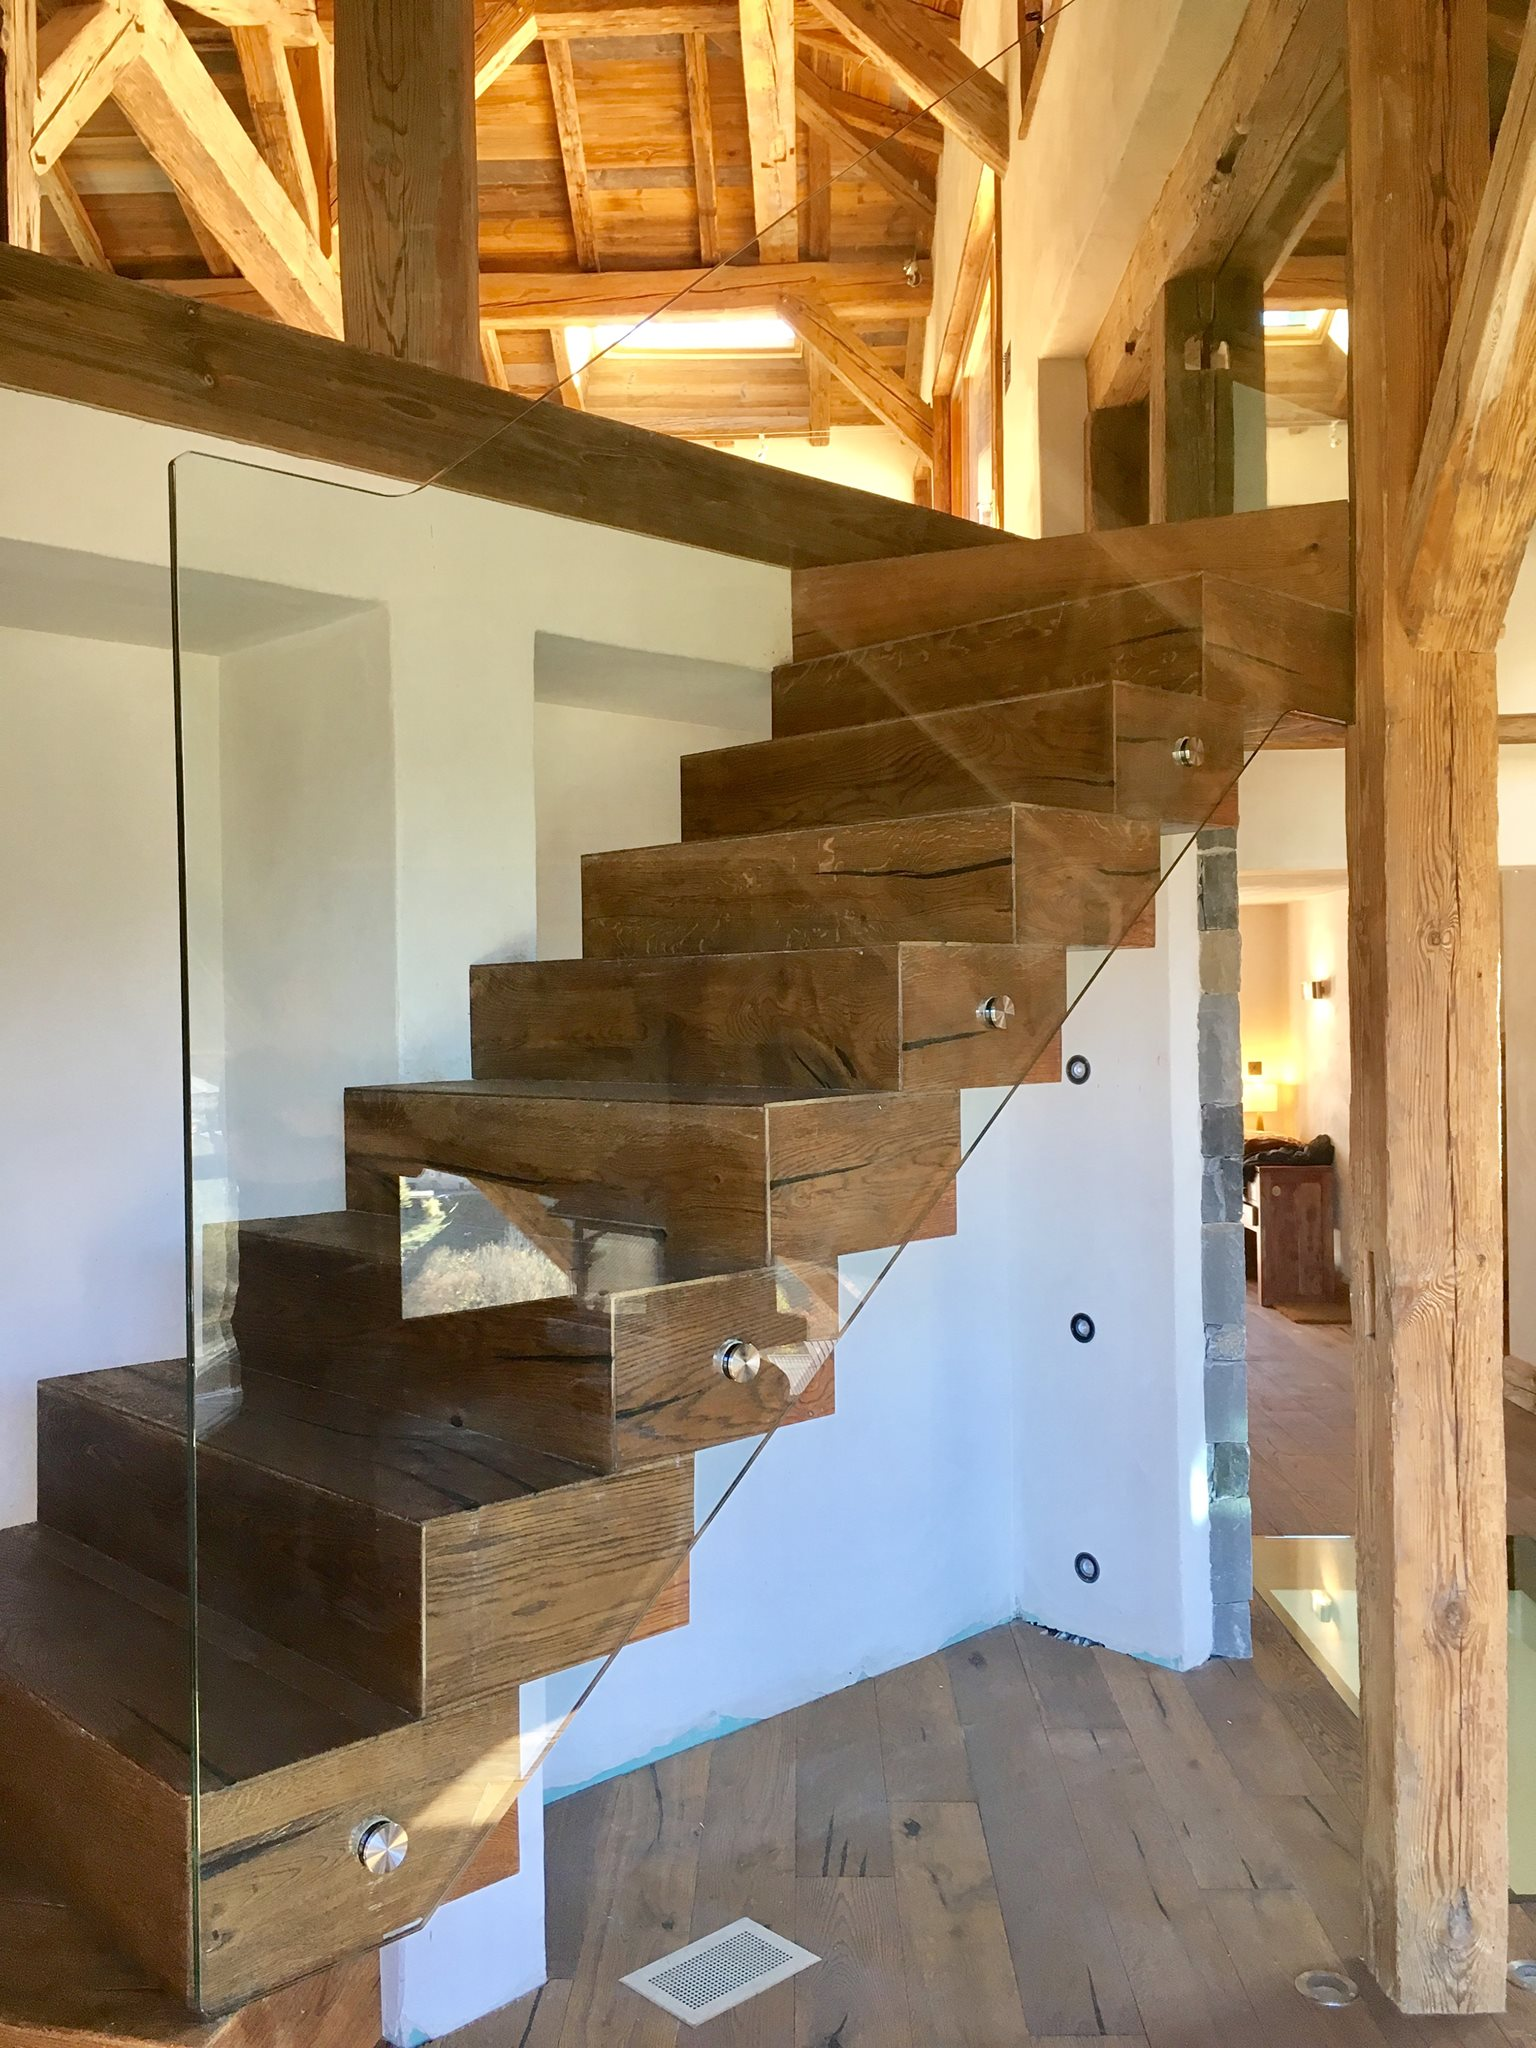 Glasswork with old wood stairs